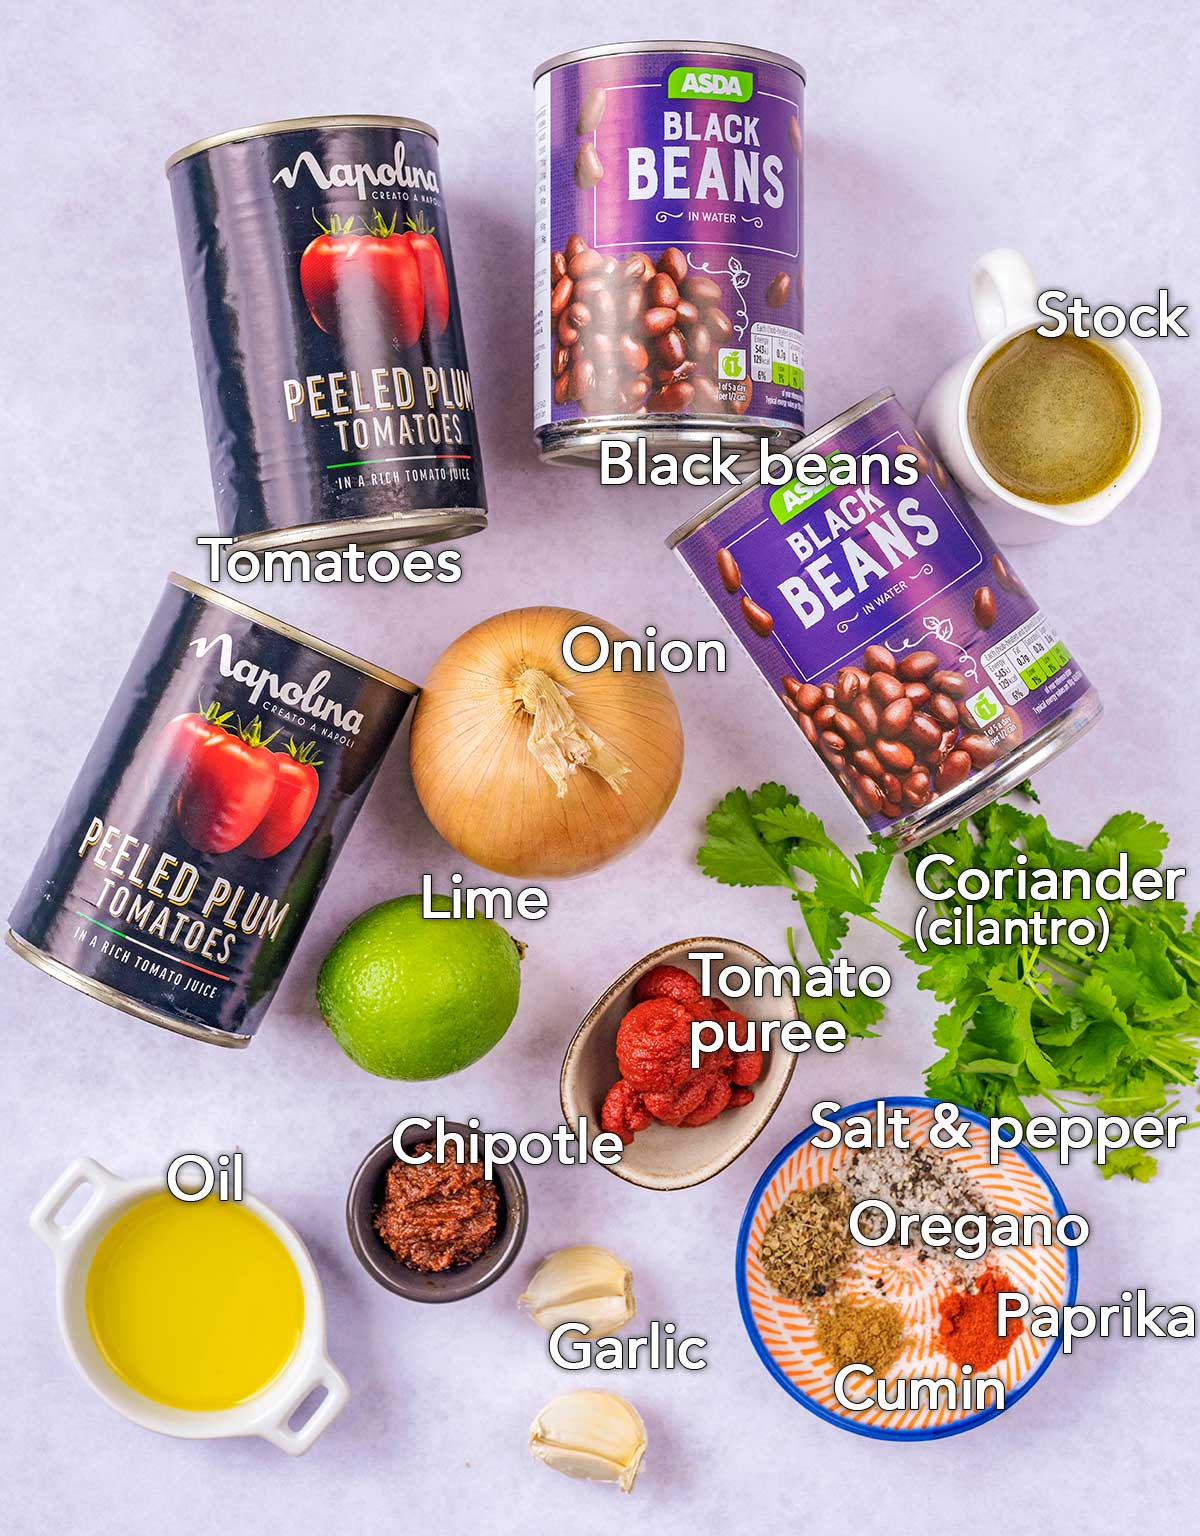 All the ingredients needed for this recipe with text overlay labels.